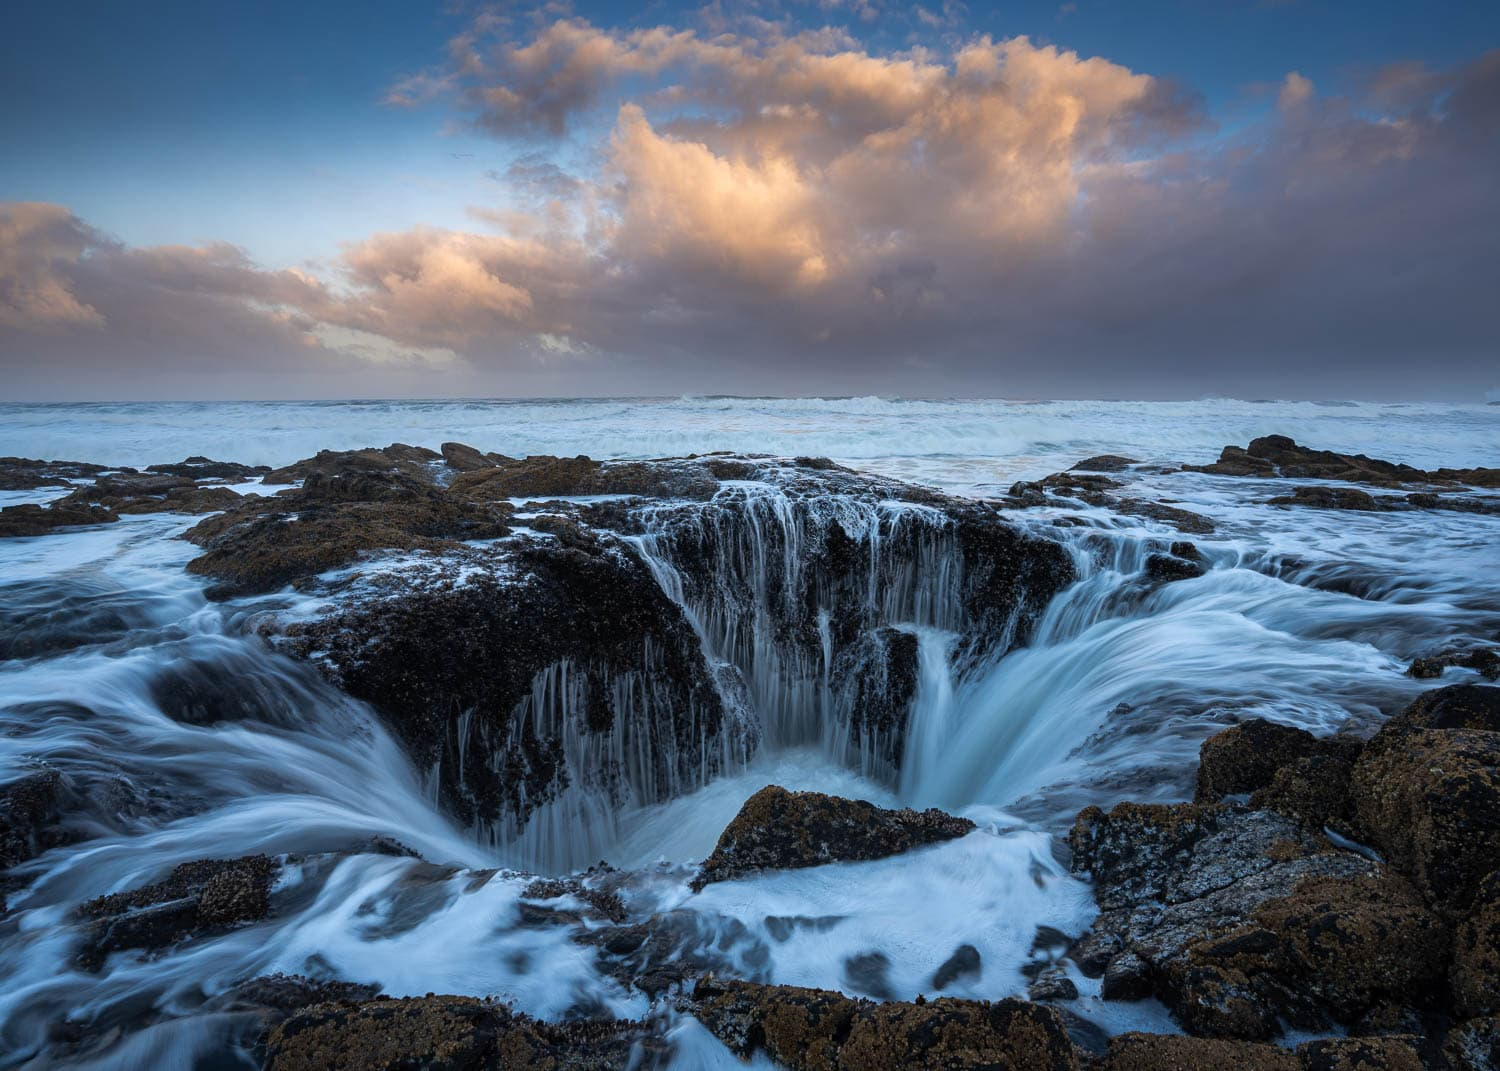 Rocky cauldron with ocean water flowing into it under sunrise skies